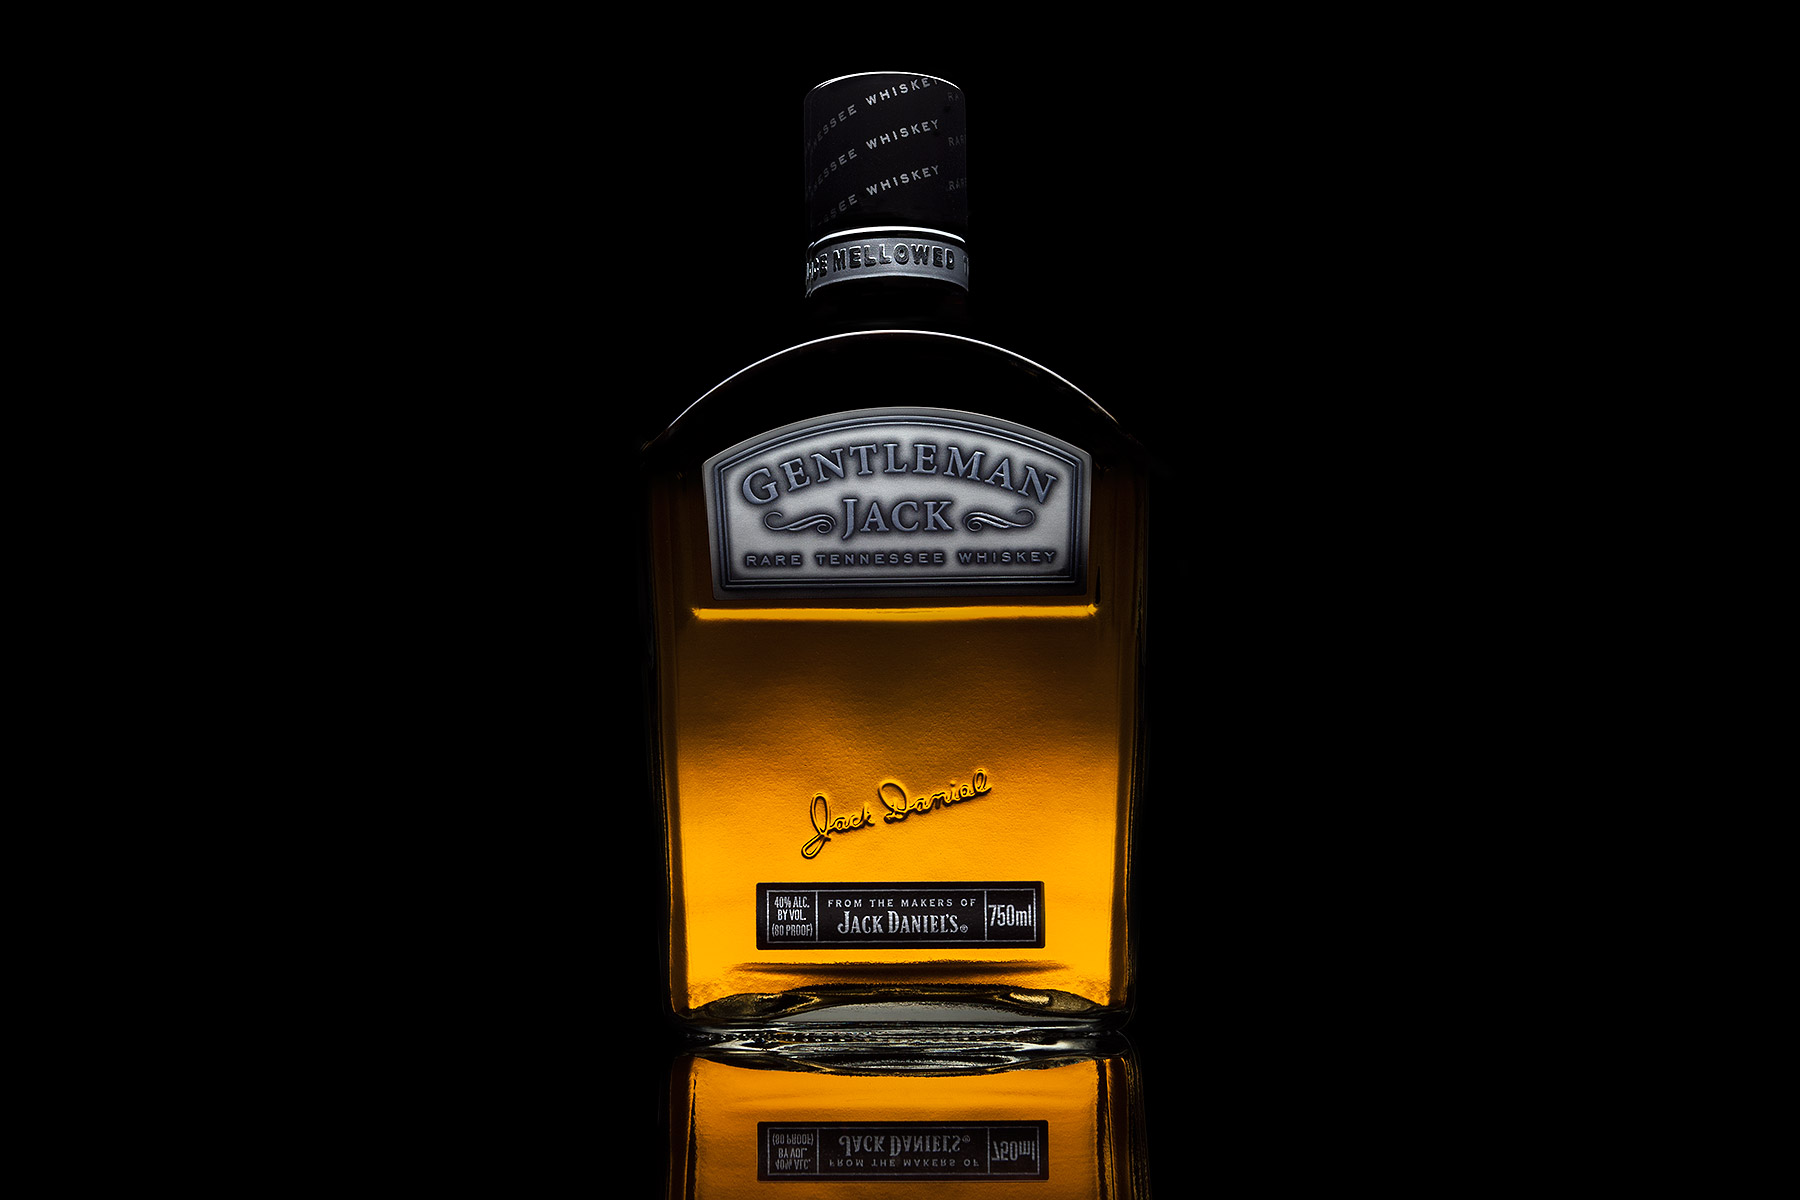 Gentleman Jack Daniels Bottle | Dovis Bird Agency Reps